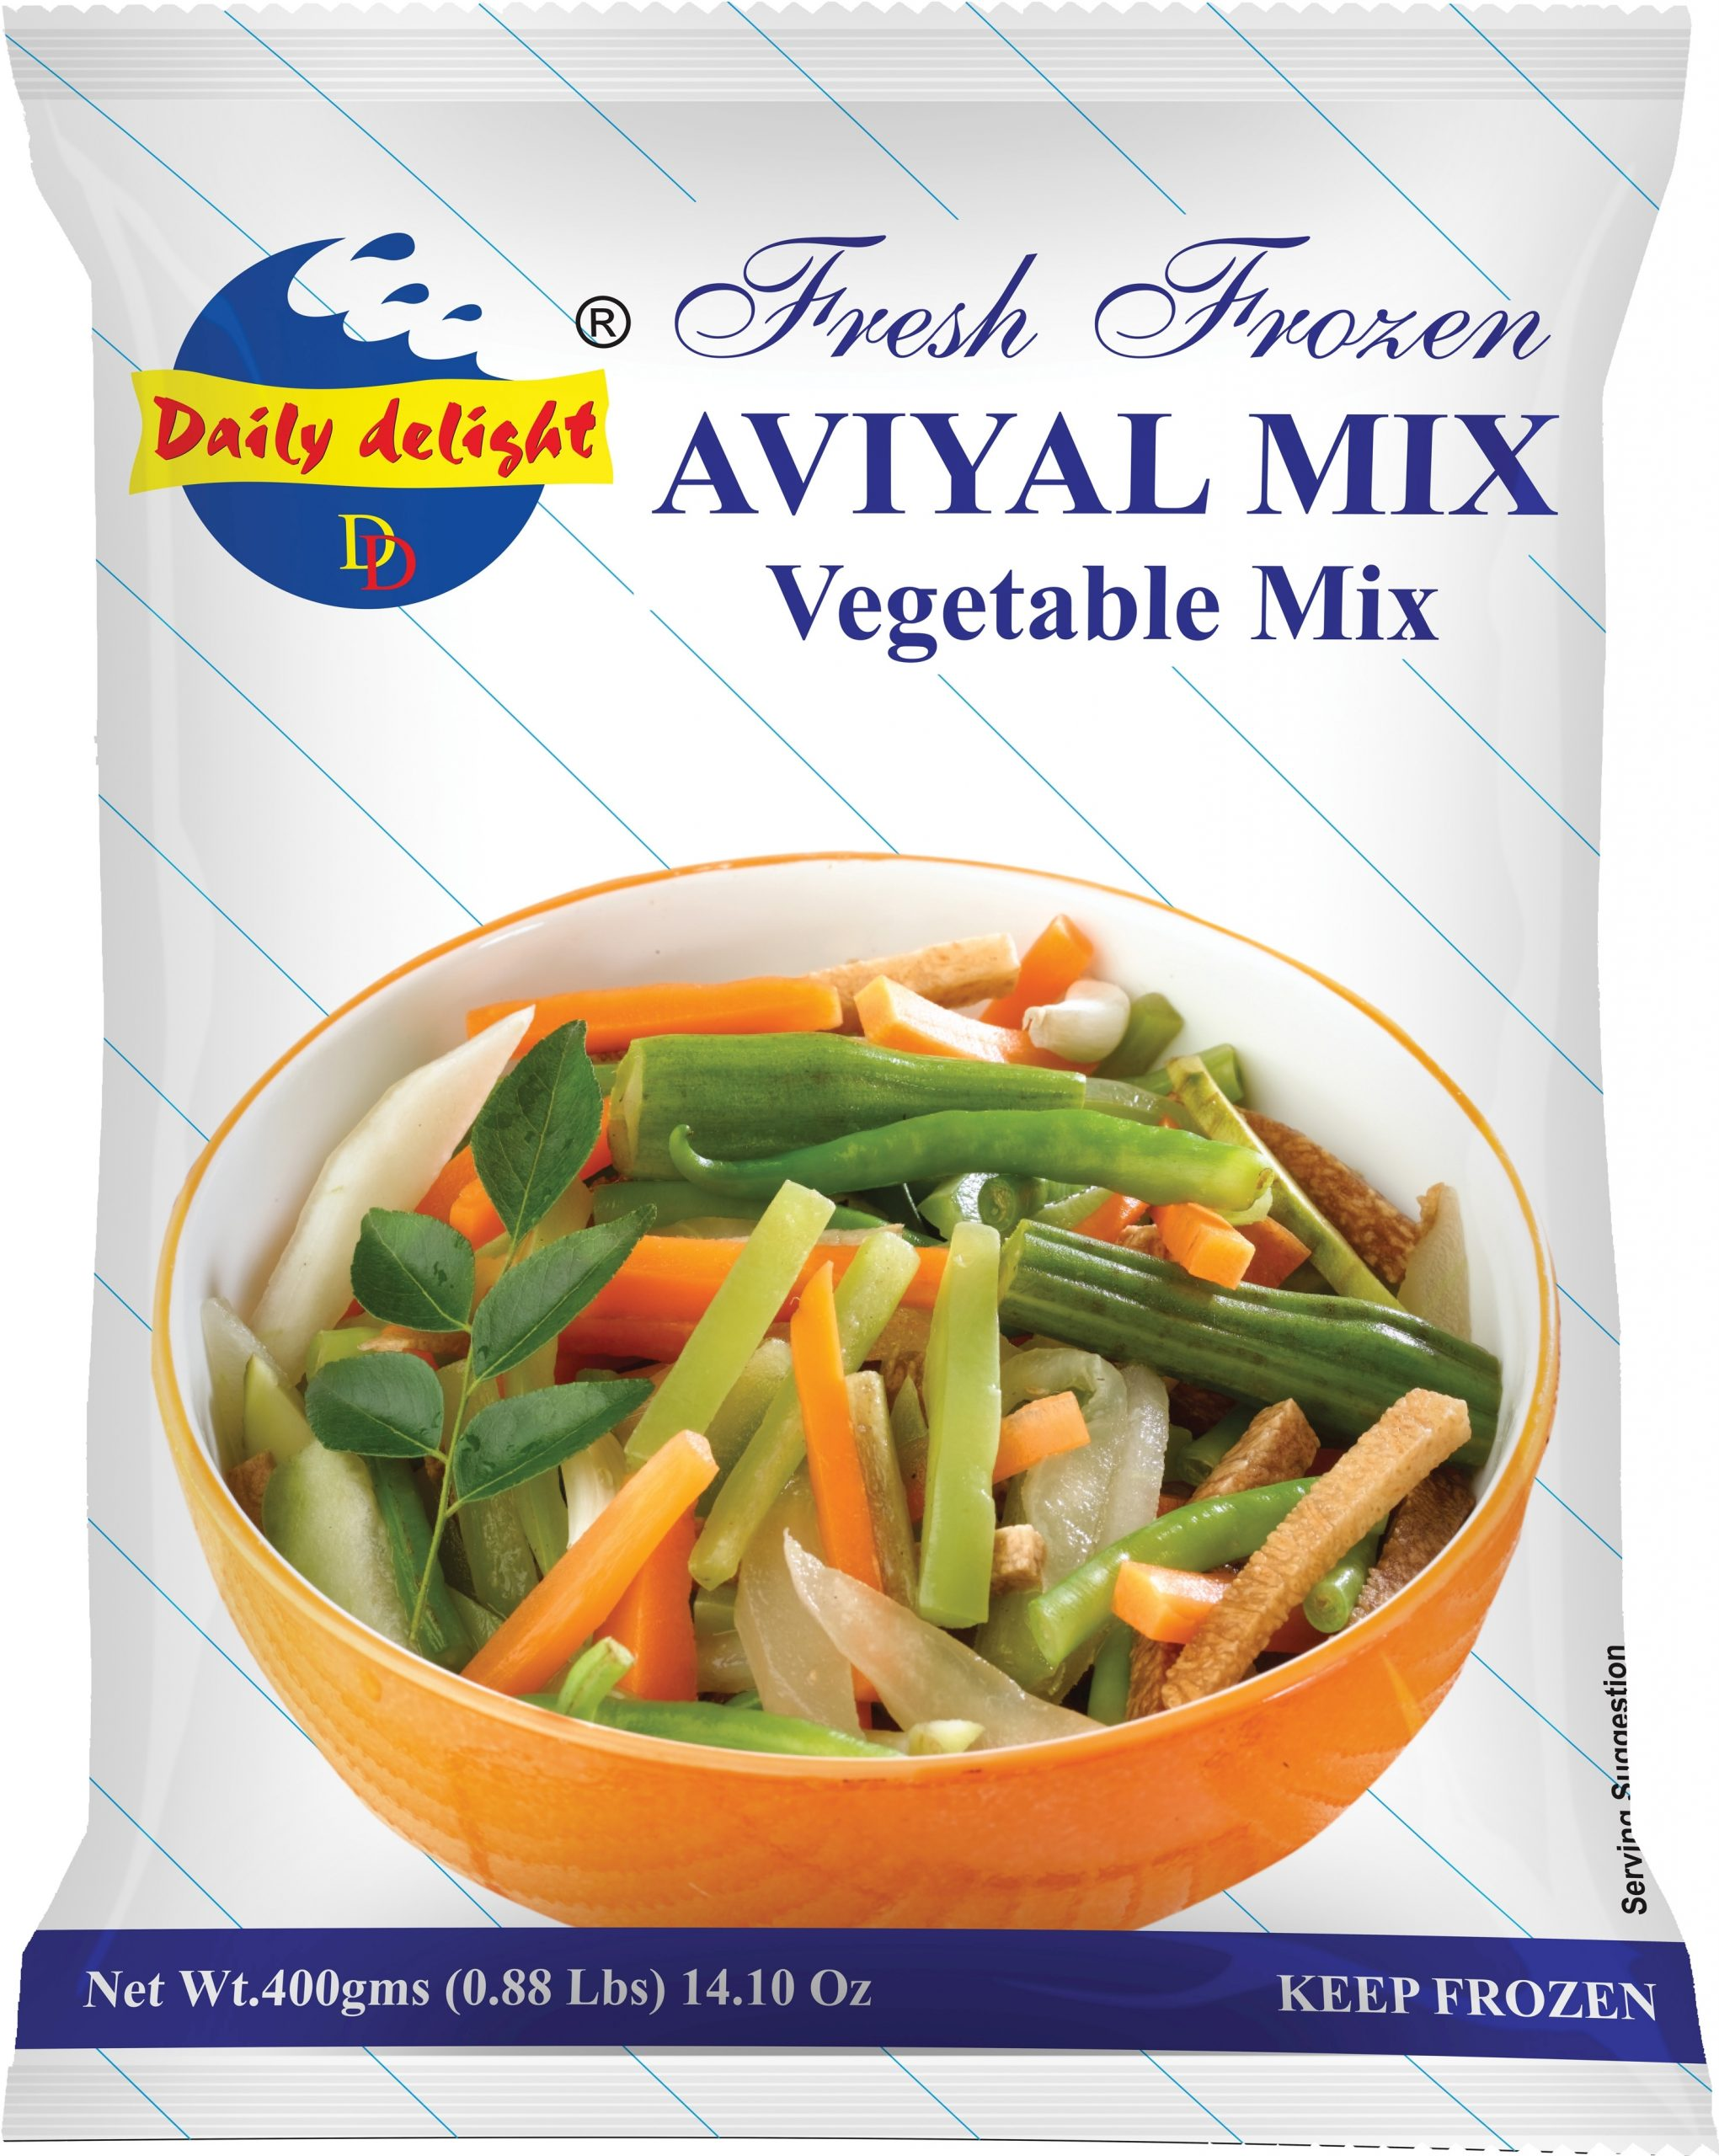 Daily Delight Aviyal Mix